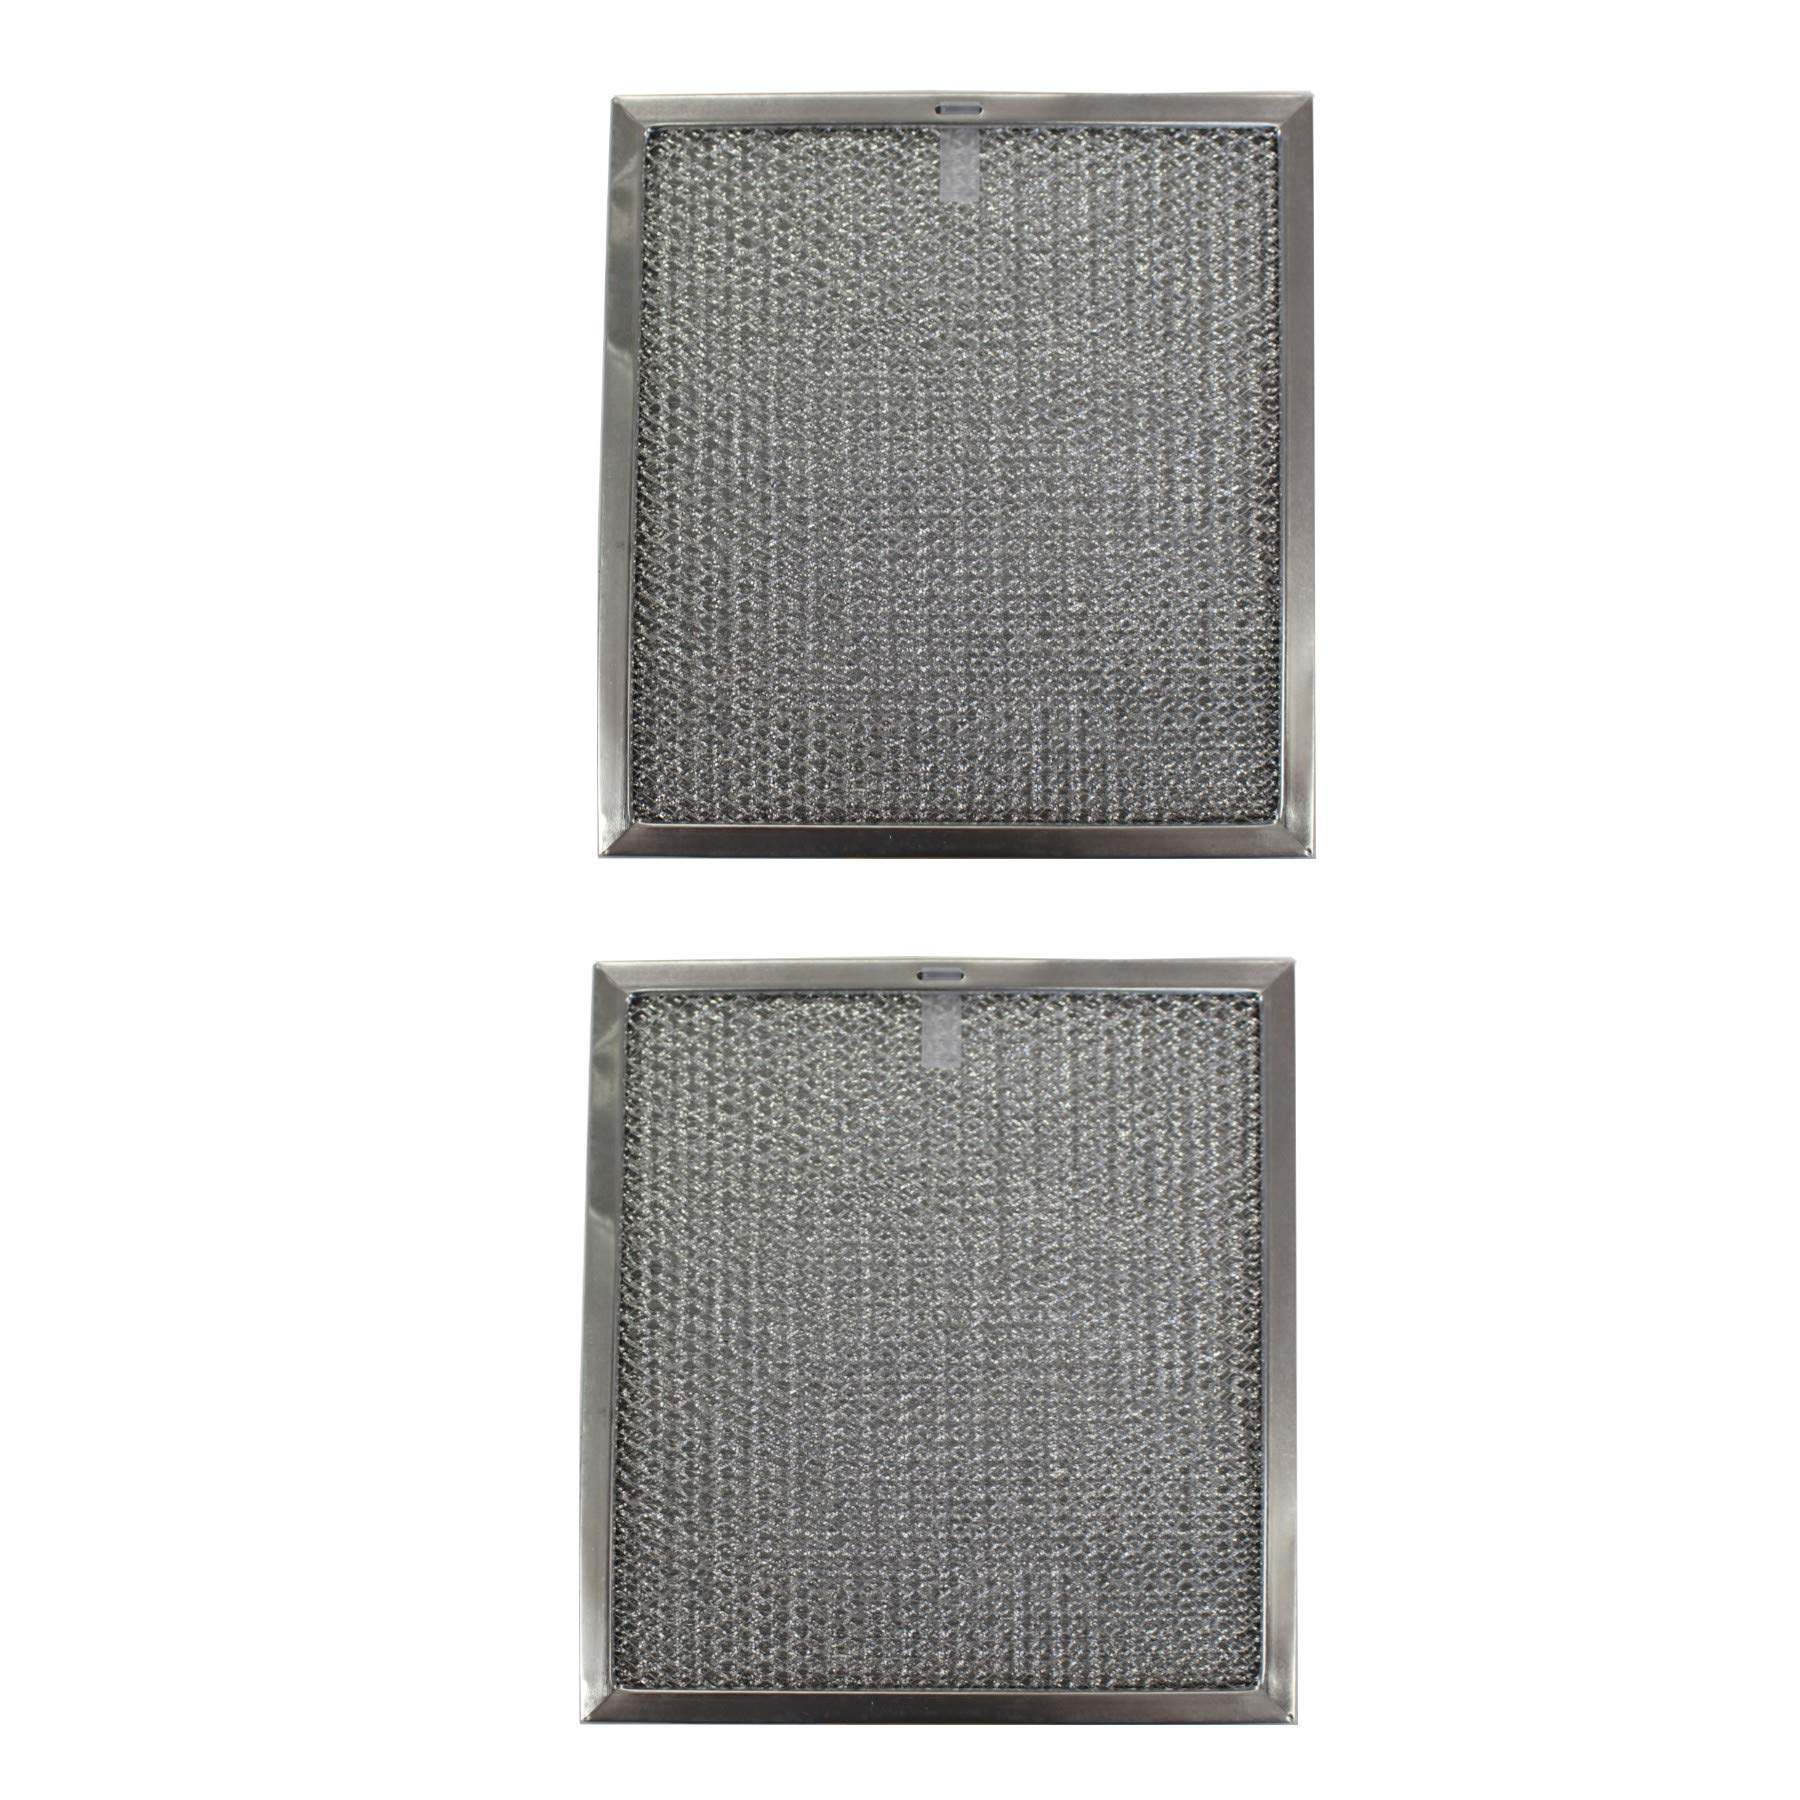 Replacement Aluminum Filters Compatible with Broan SV03509, Broan V03509, Sears/Kenmore SV03509, Sea